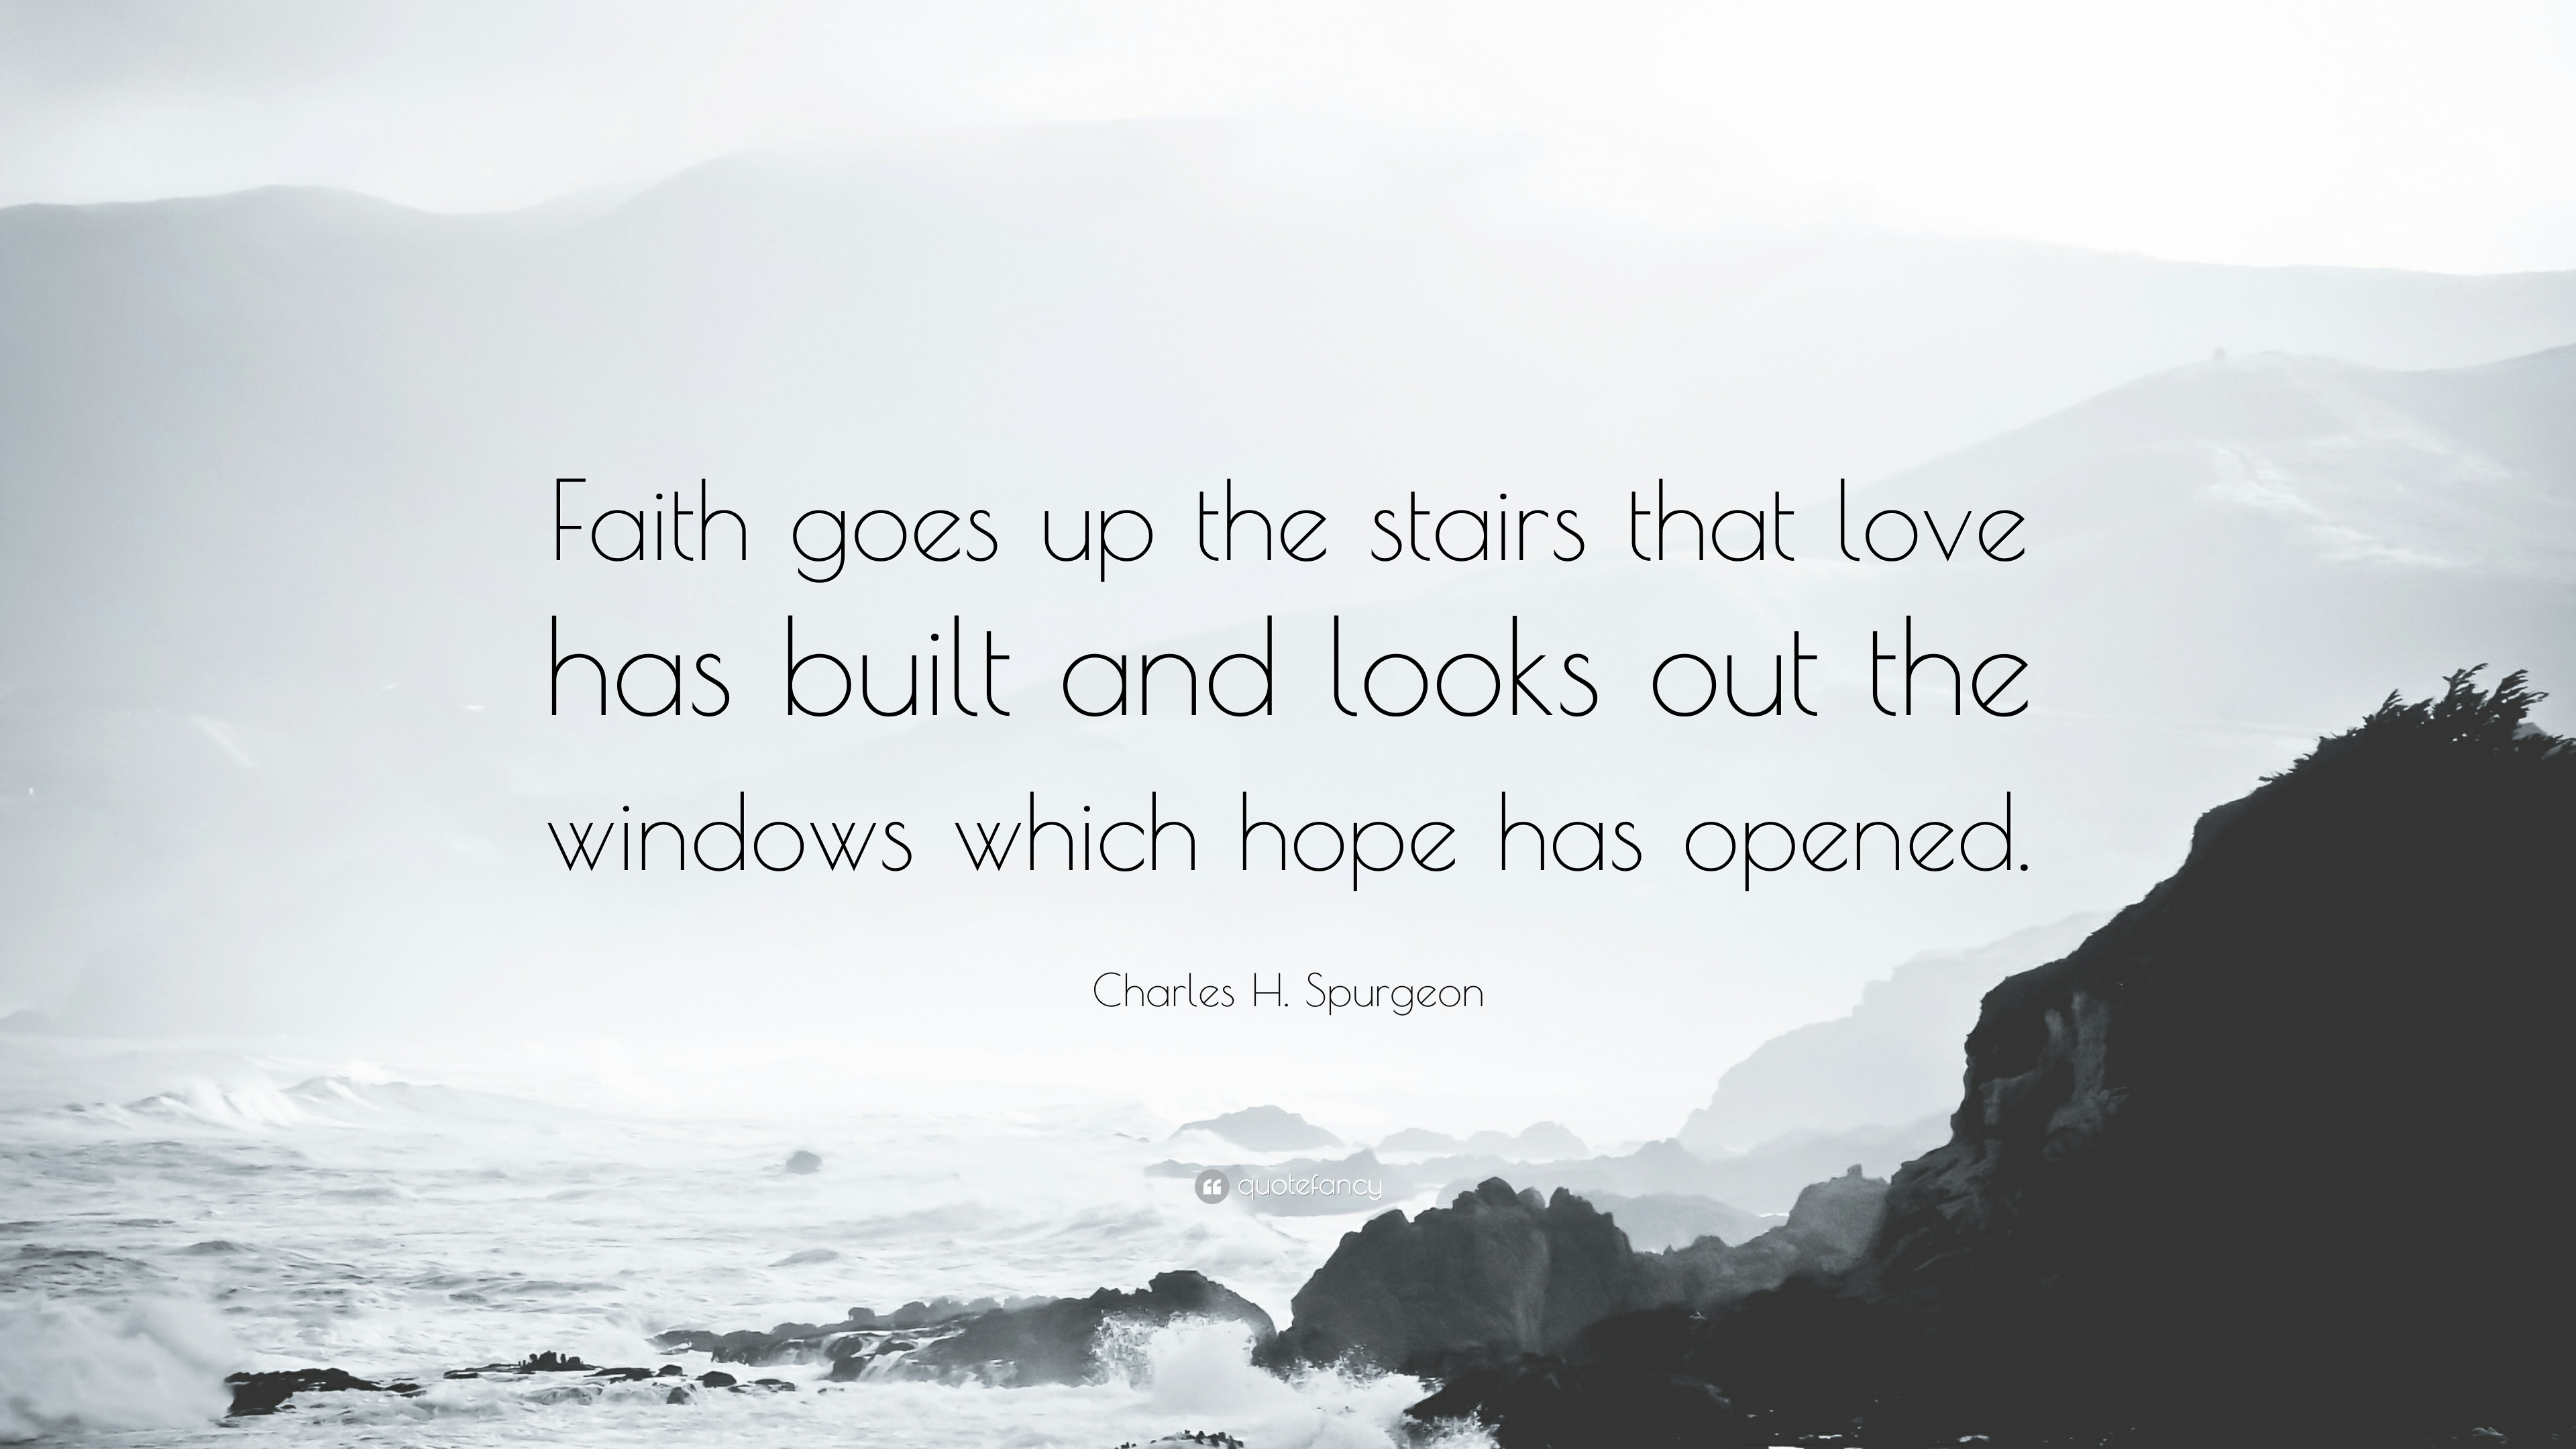 Christian Quotes: U201cFaith Goes Up The Stairs That Love Has Built And Looks  Out